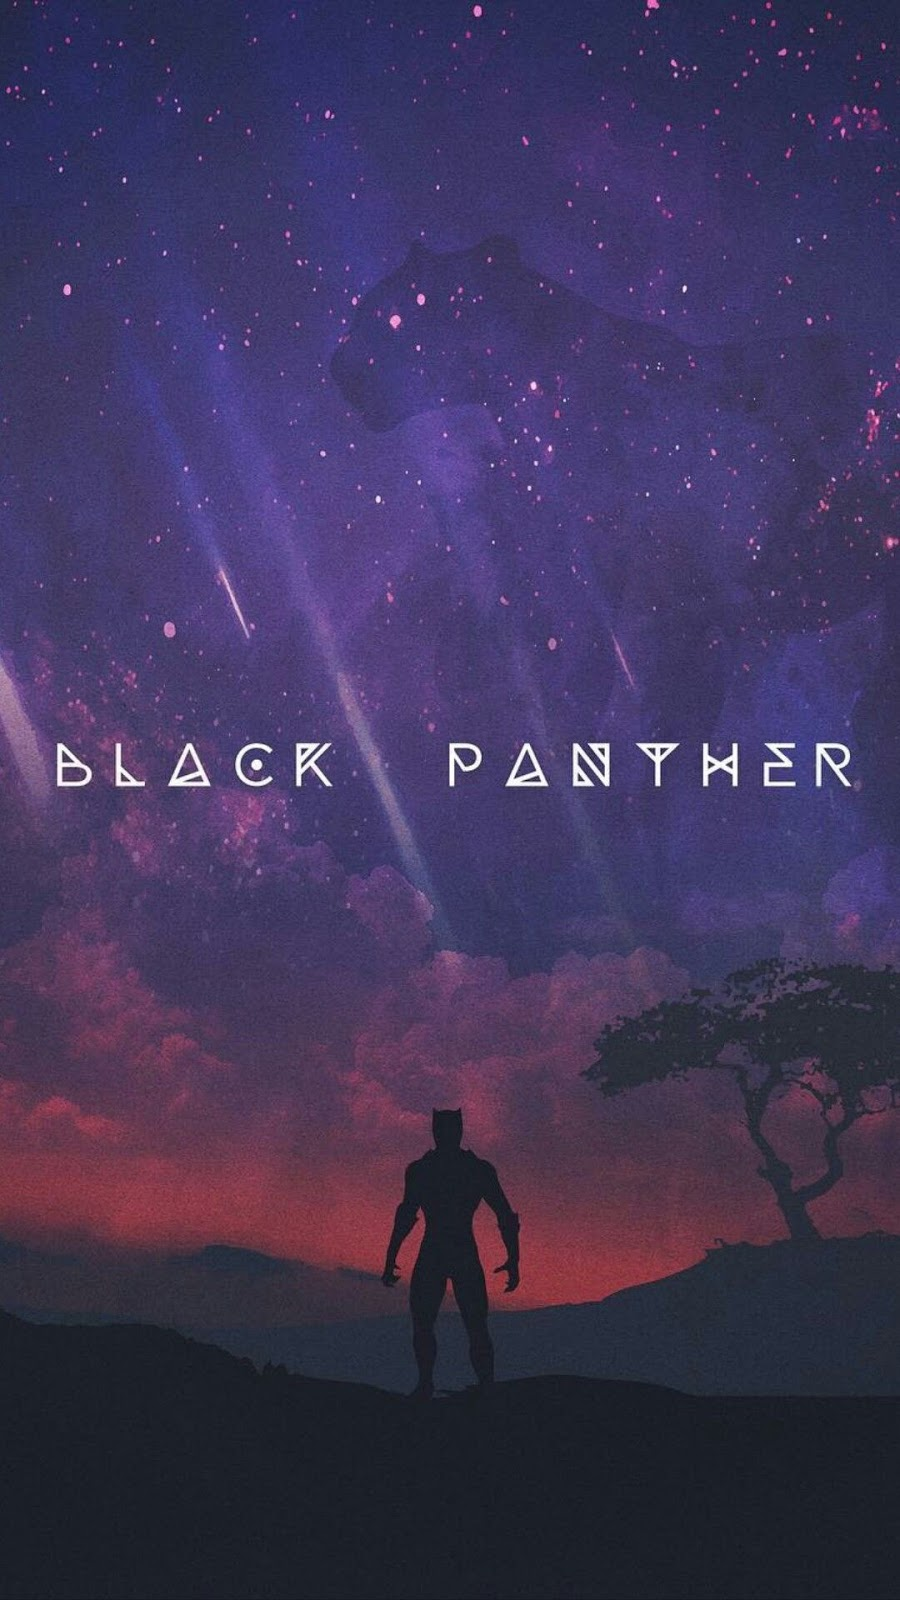 Black Panther Wallpapers From Avengers In Hd 4k Black Panther Sunsets Wallpaper Iphone 900x1600 Wallpaper Teahub Io